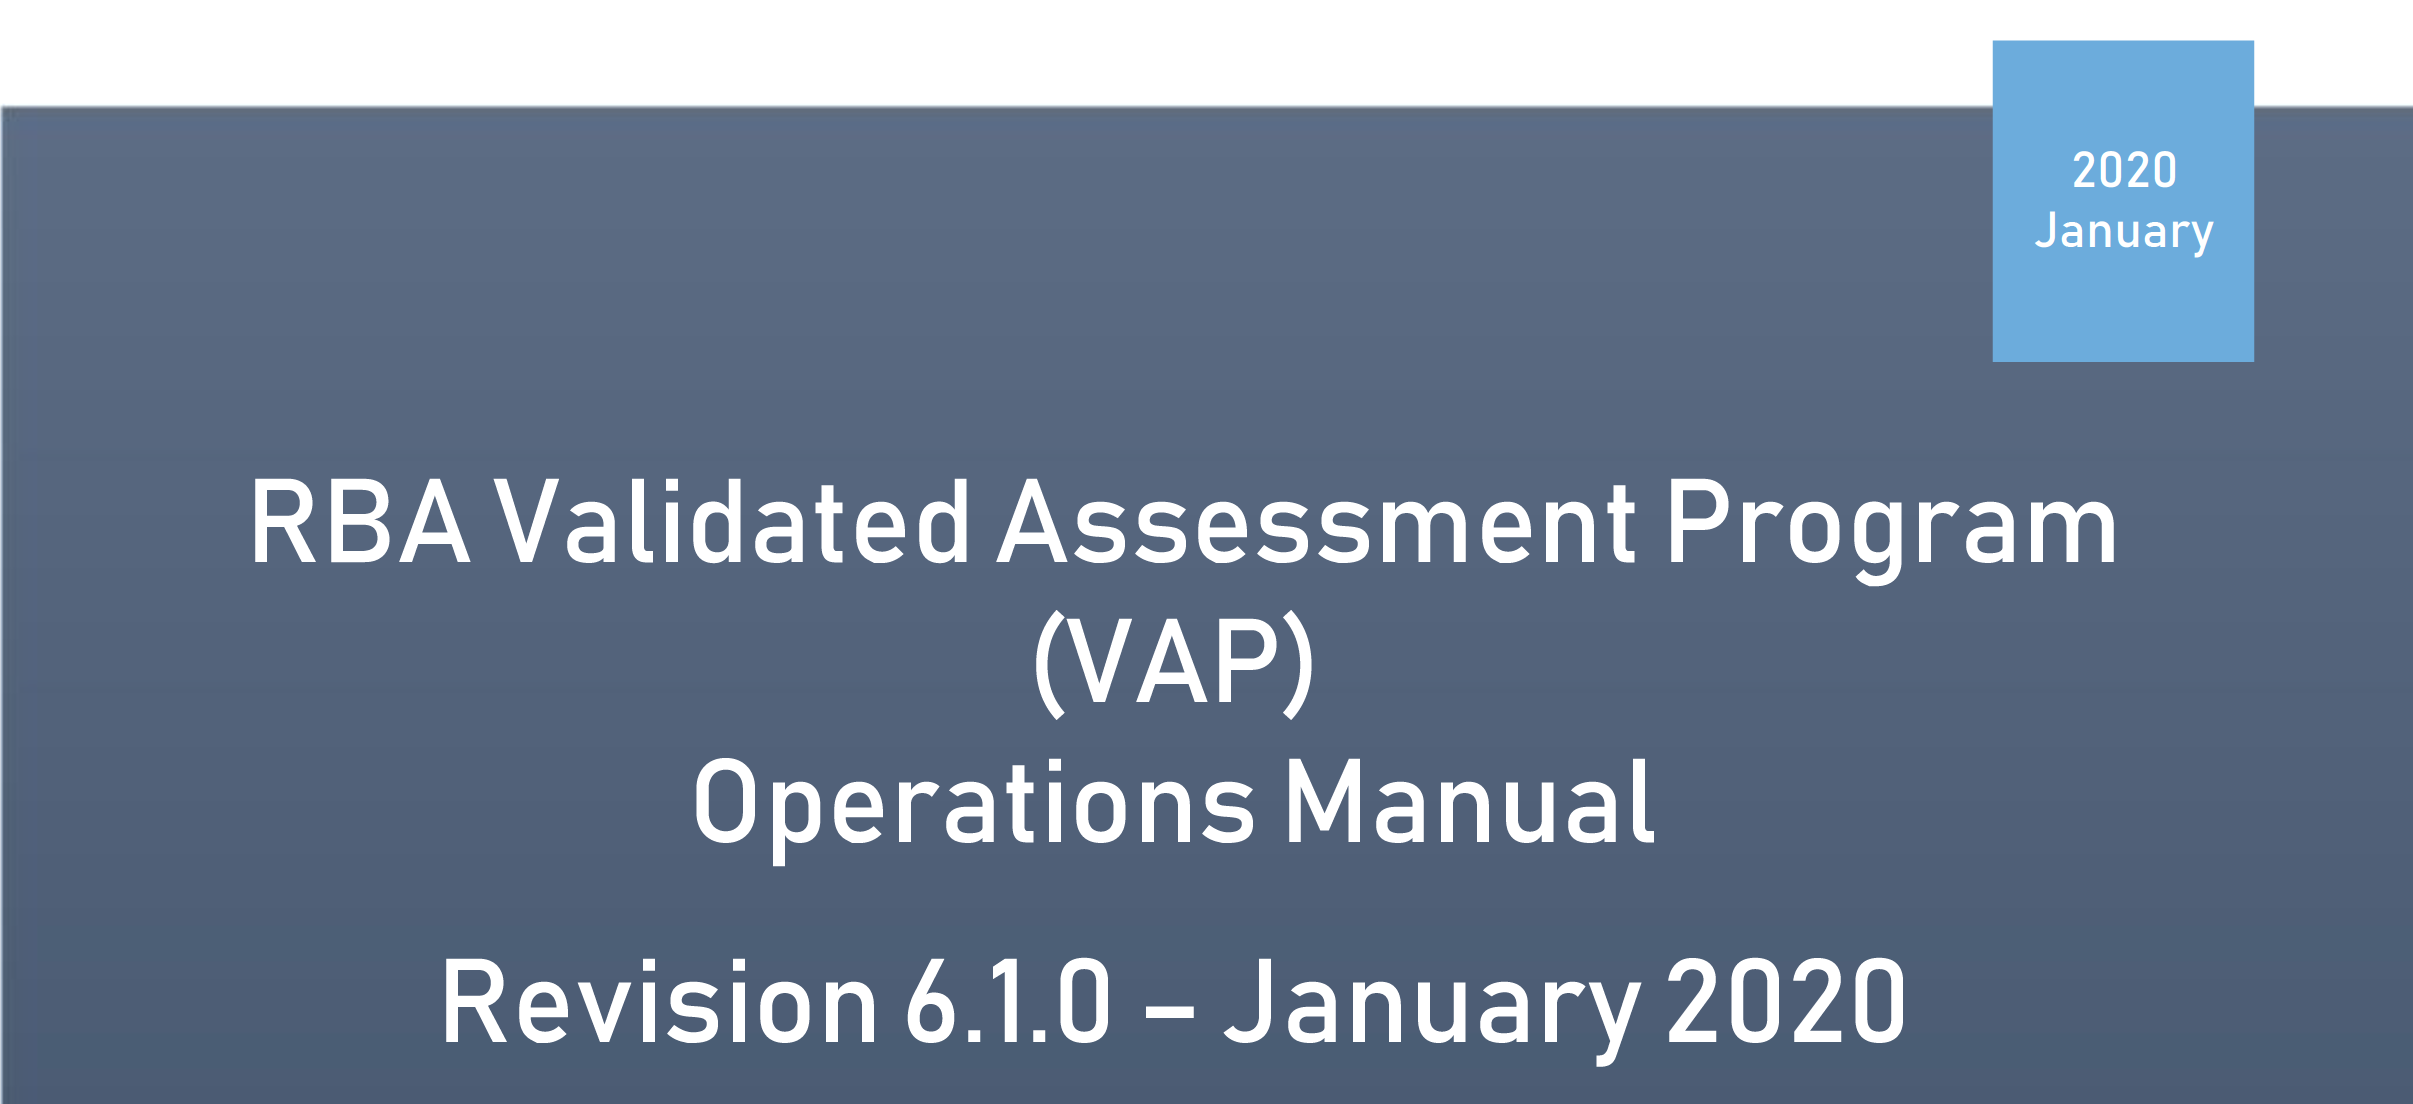 Download RBA VAP Code Interpretation Guidance 6.1.0